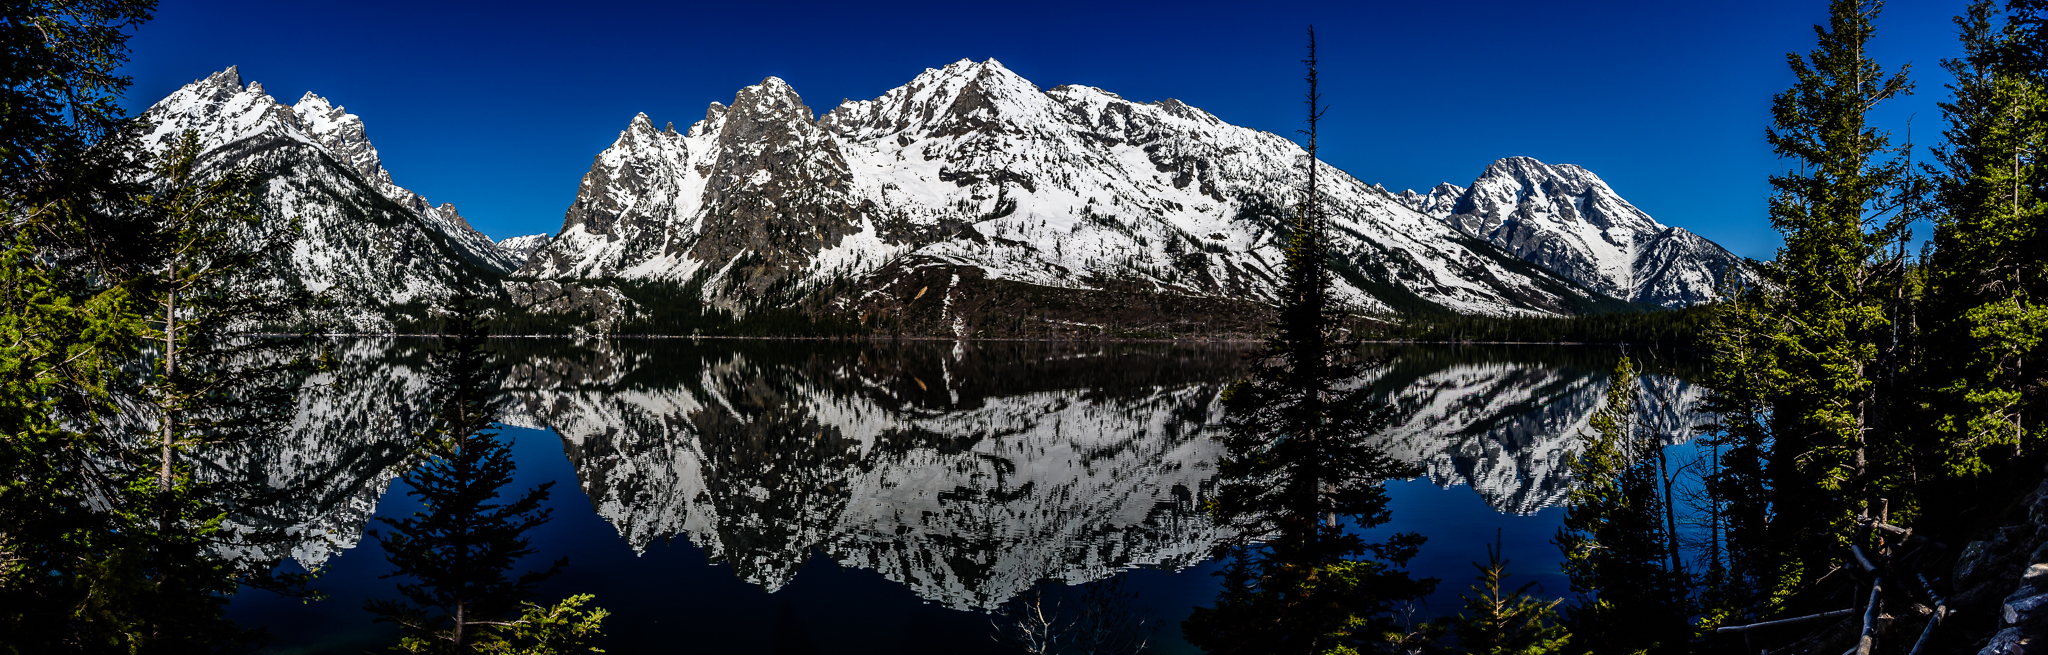 Jenny Lake Reflections